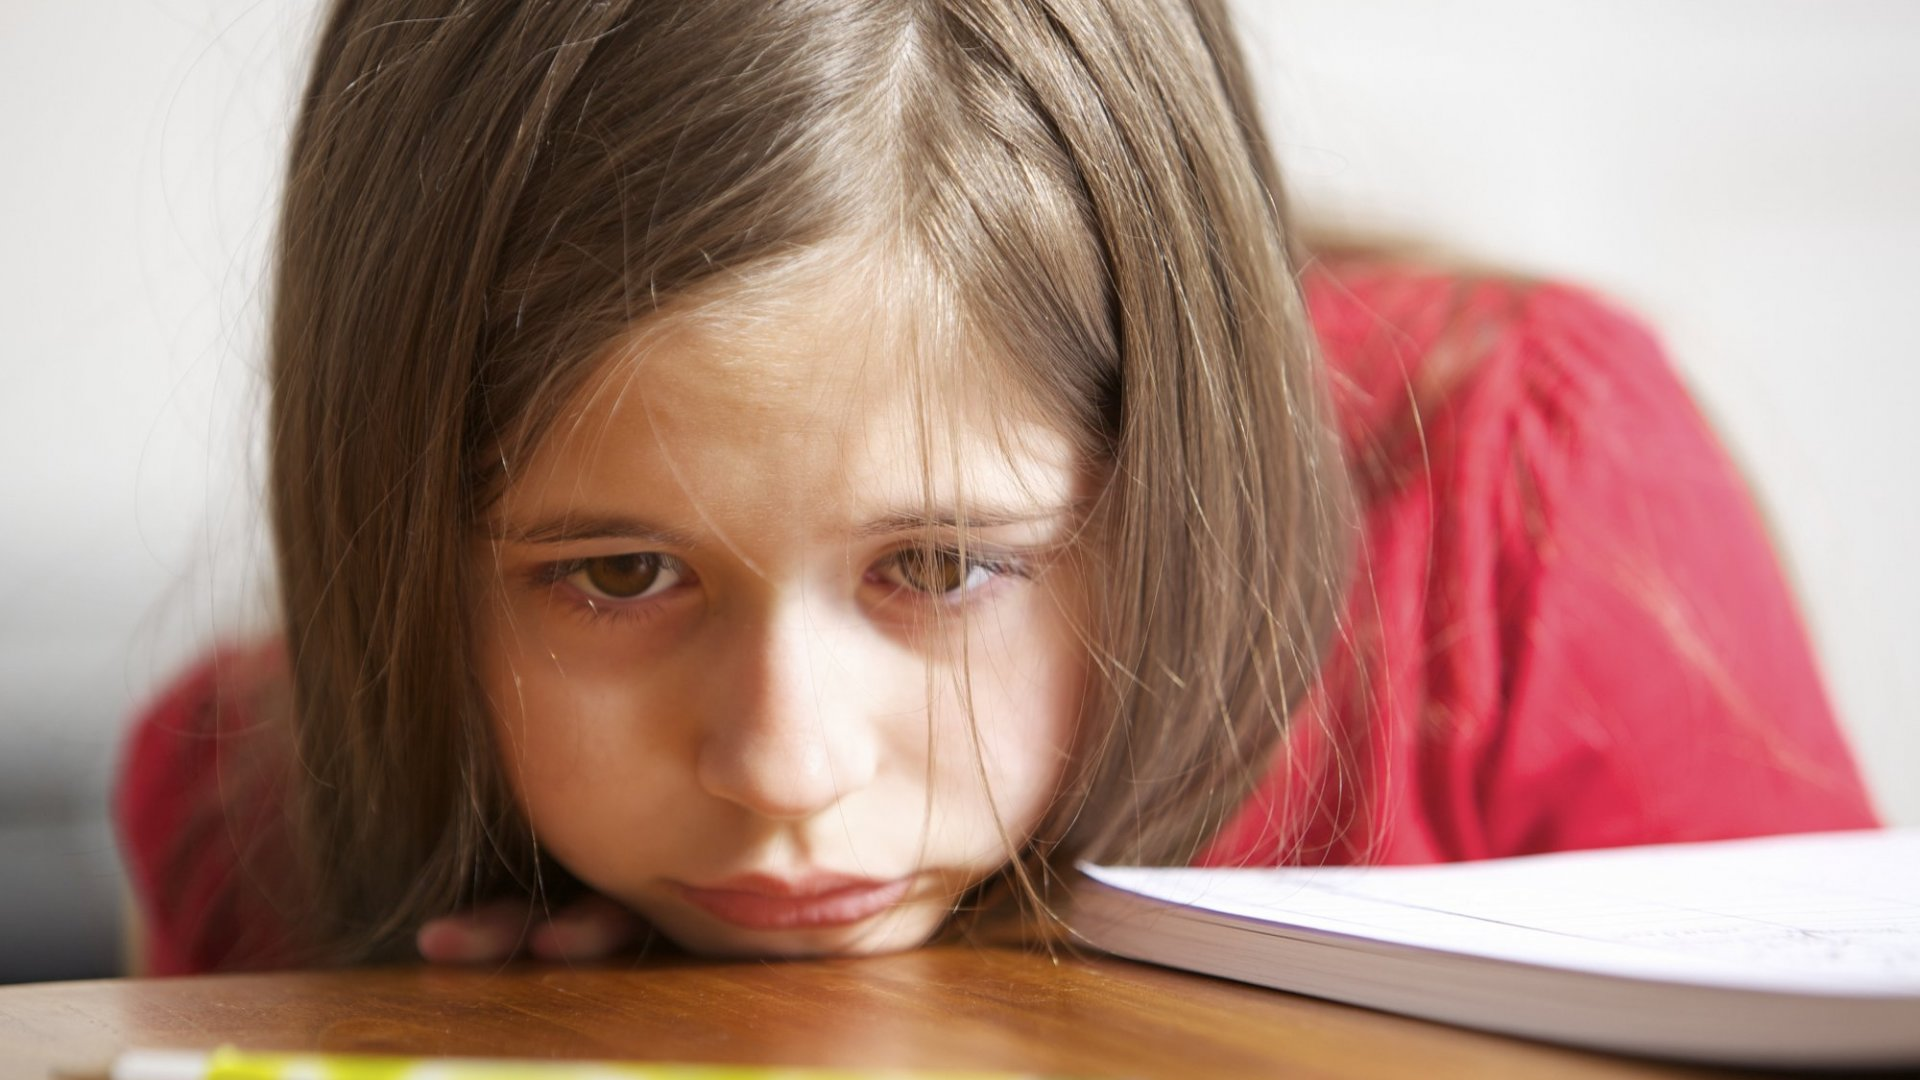 Researchers Gave Math Geniuses 5th Grade Math Problems. It Didn't Go Well